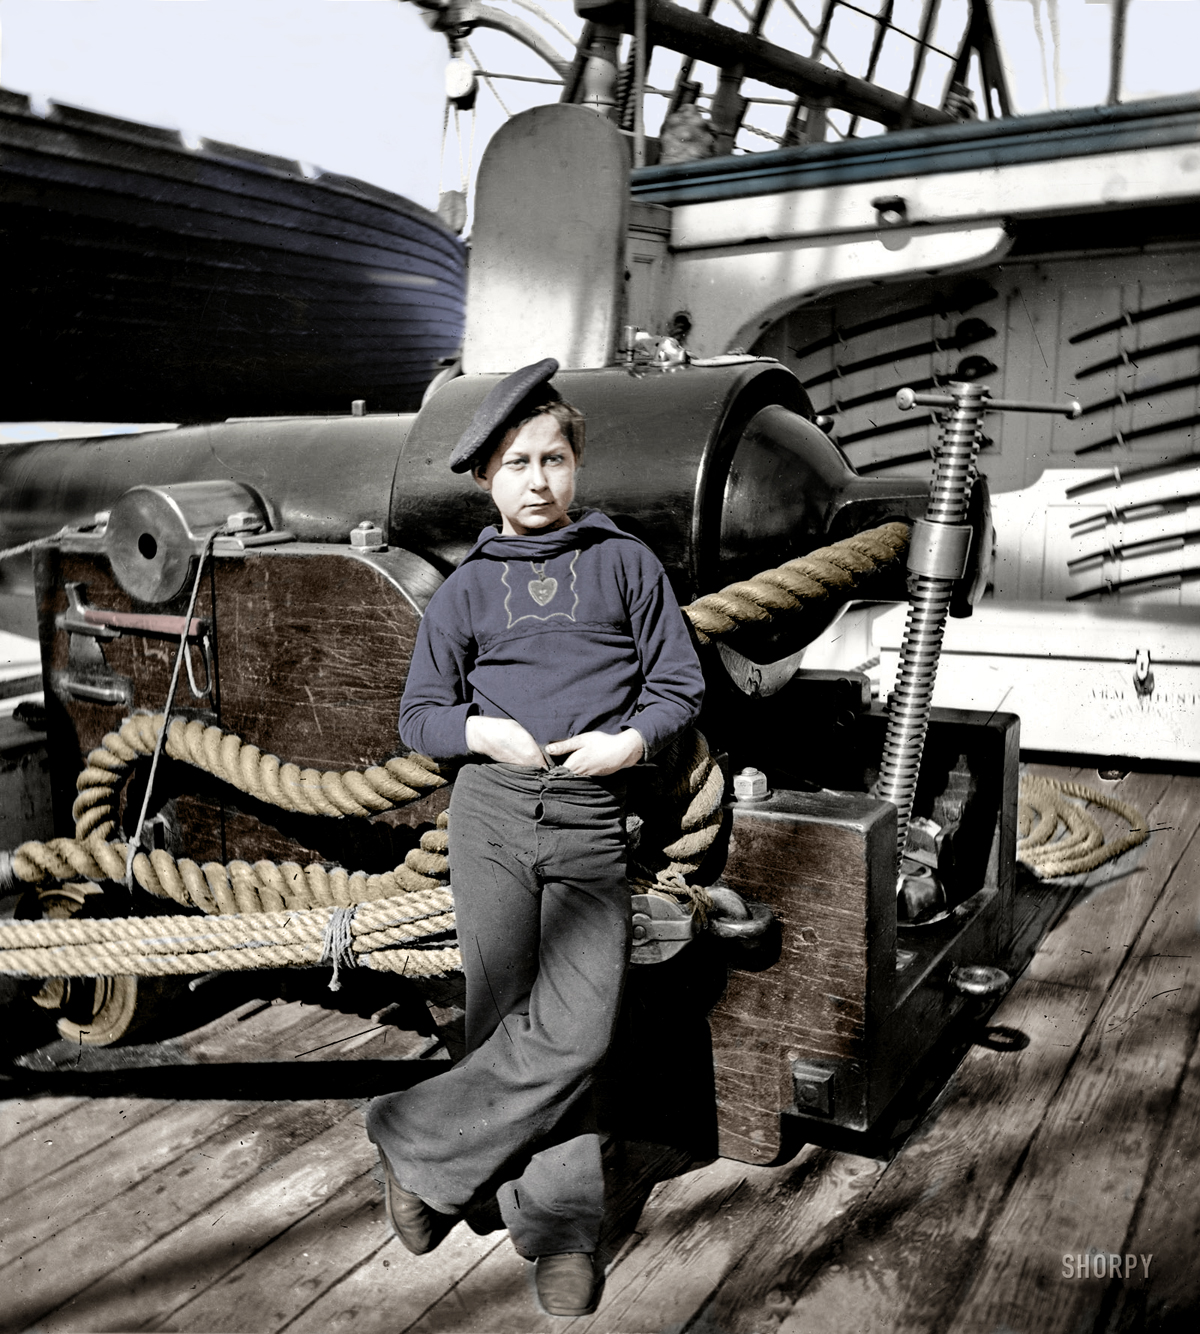 weird jobs that don t exist anymore osoti powder monkey back in ye olde days of seafaring if you were a young boy on a warship you would be given the task of stuffing gunpowder into the cannons as